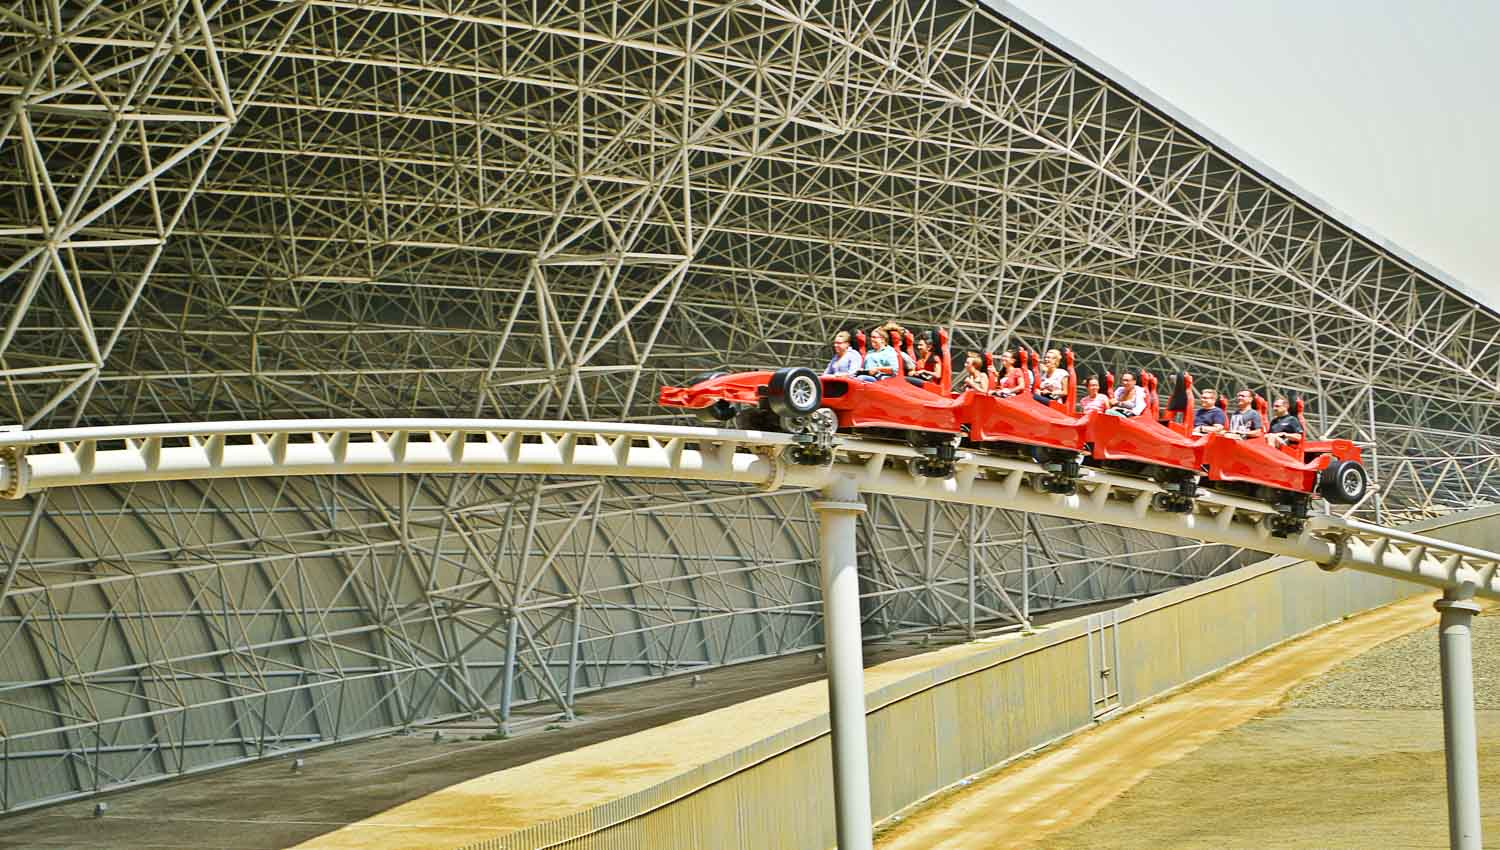 Five Frame Ferrari World Abu Dhabi Top Tours Amp Tickets 2018 With